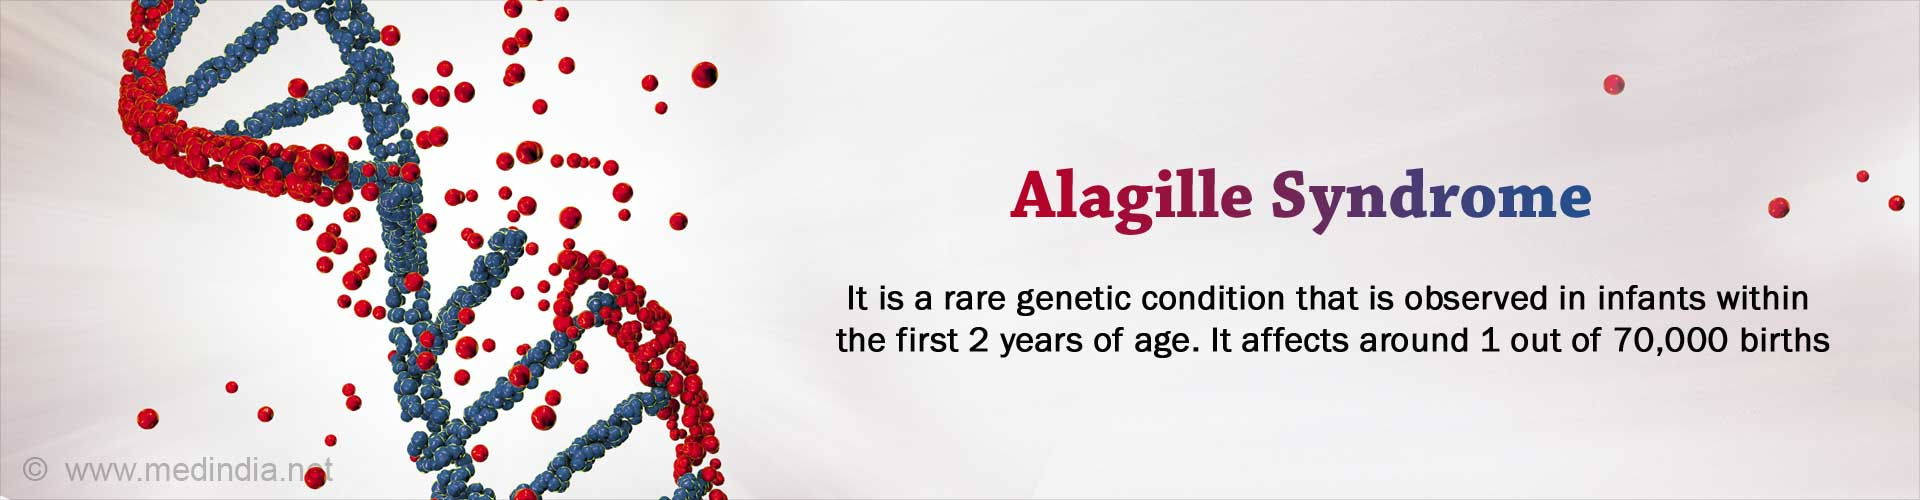 Alagille Syndrome (AGS) - Causes, Symptoms, Diagnosis, Treatment, Prevention